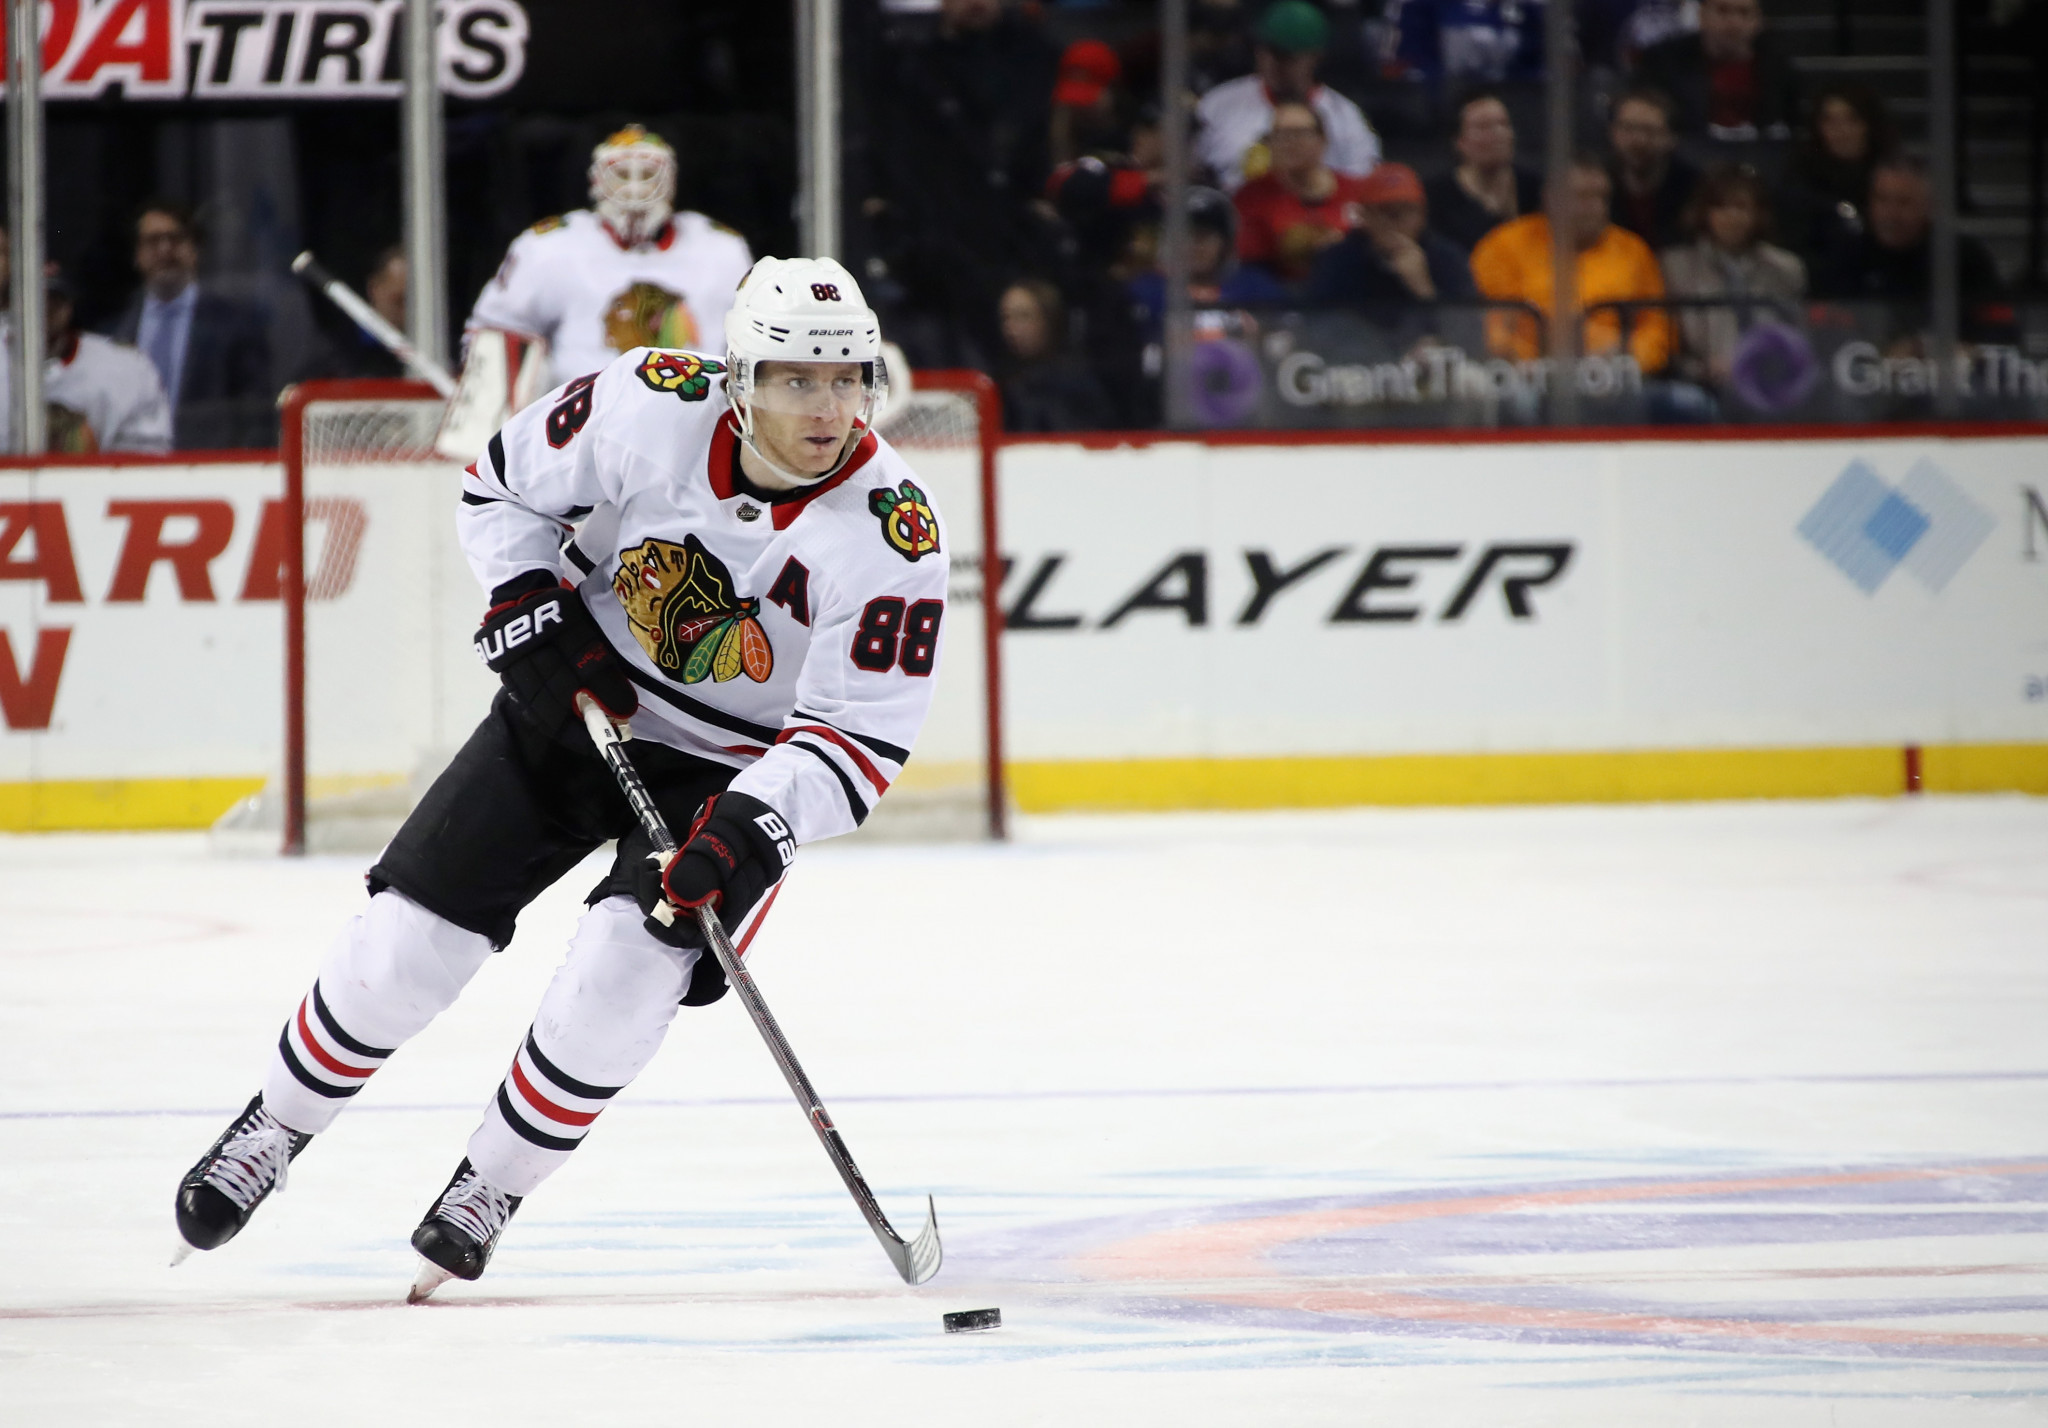 Patrick Kane will captain the US team at the IIHF Men's World Championship later this year ©Getty Images